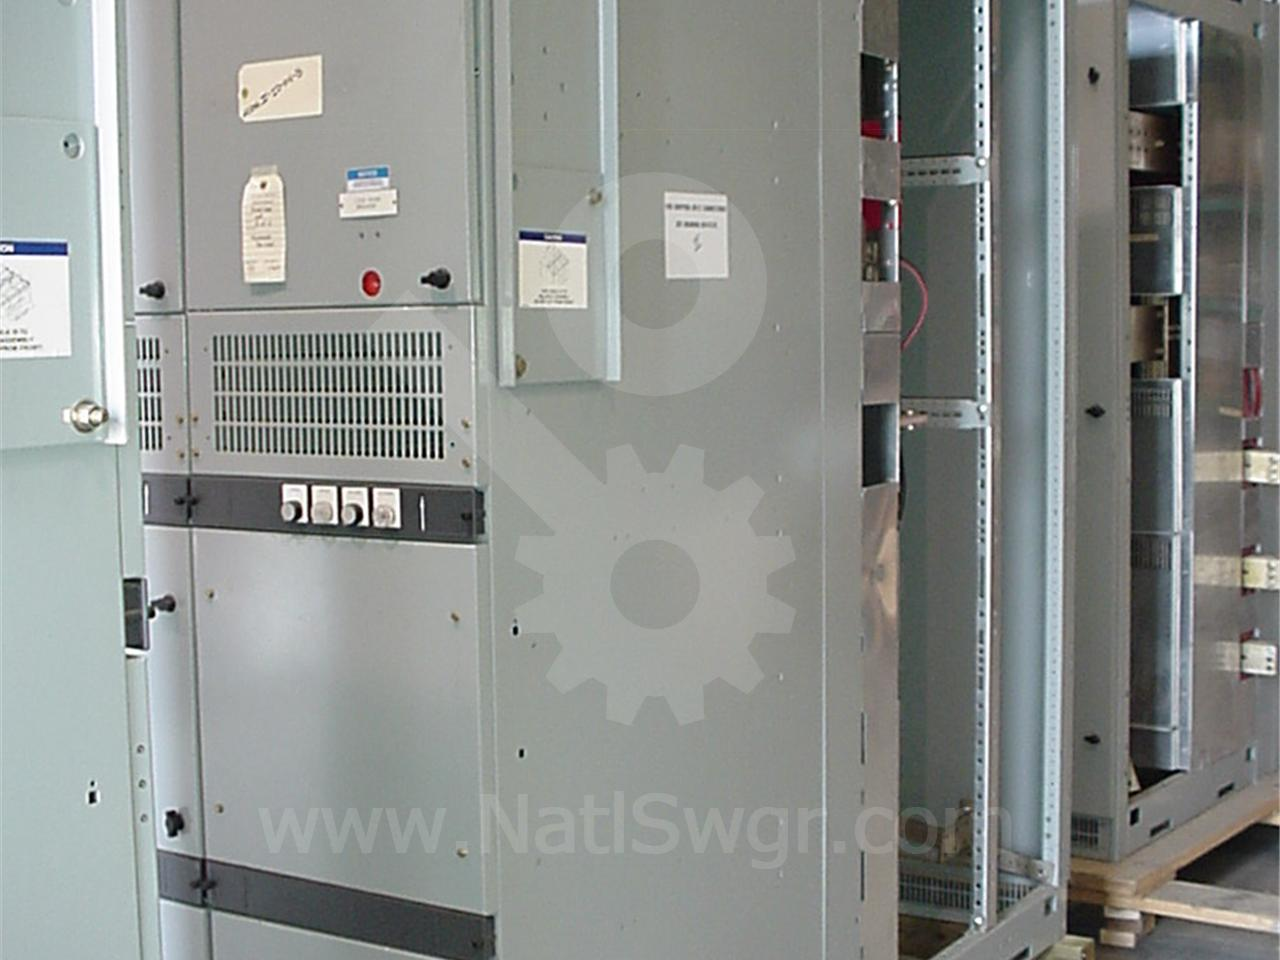 2000A Cutler-Hammer DSII FUSED INDOOR SWITCHGEAR 1-2000A FEEDER,1-BLANK, CONTROL SECTION